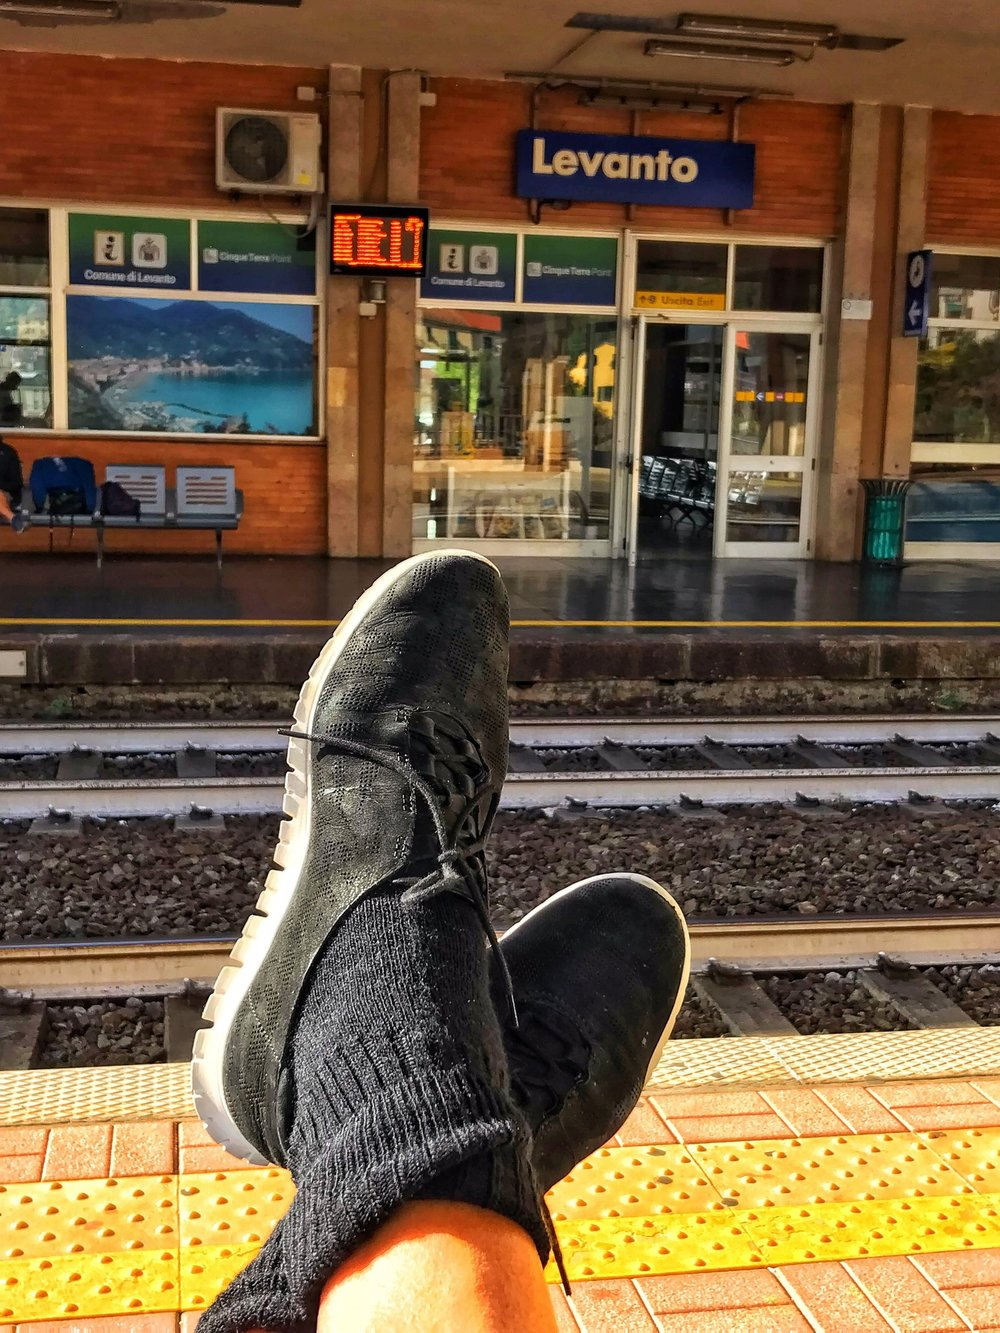 My Feet at The Levanto station